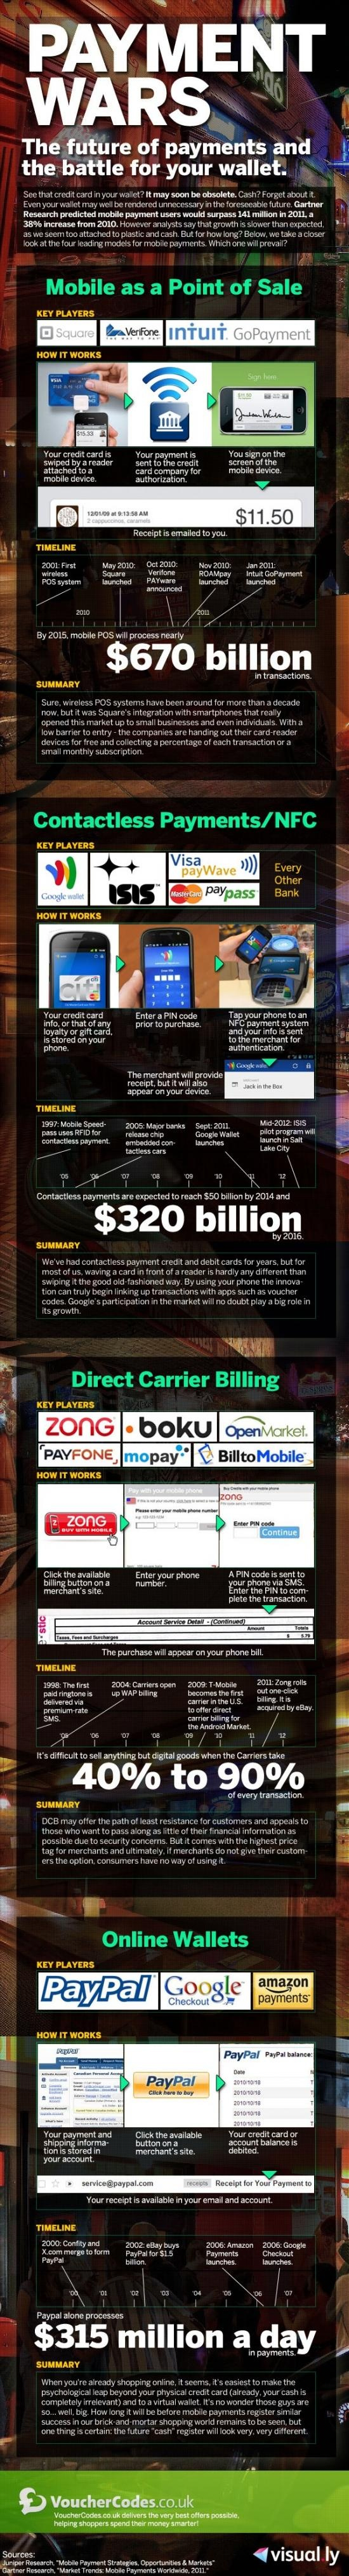 Infographic: Payment Wars - The future of payments and the battle for your wallet. Credit Cards can now be accepted on your mobile phone using mobile apps. #infographics #creditcards #mobile